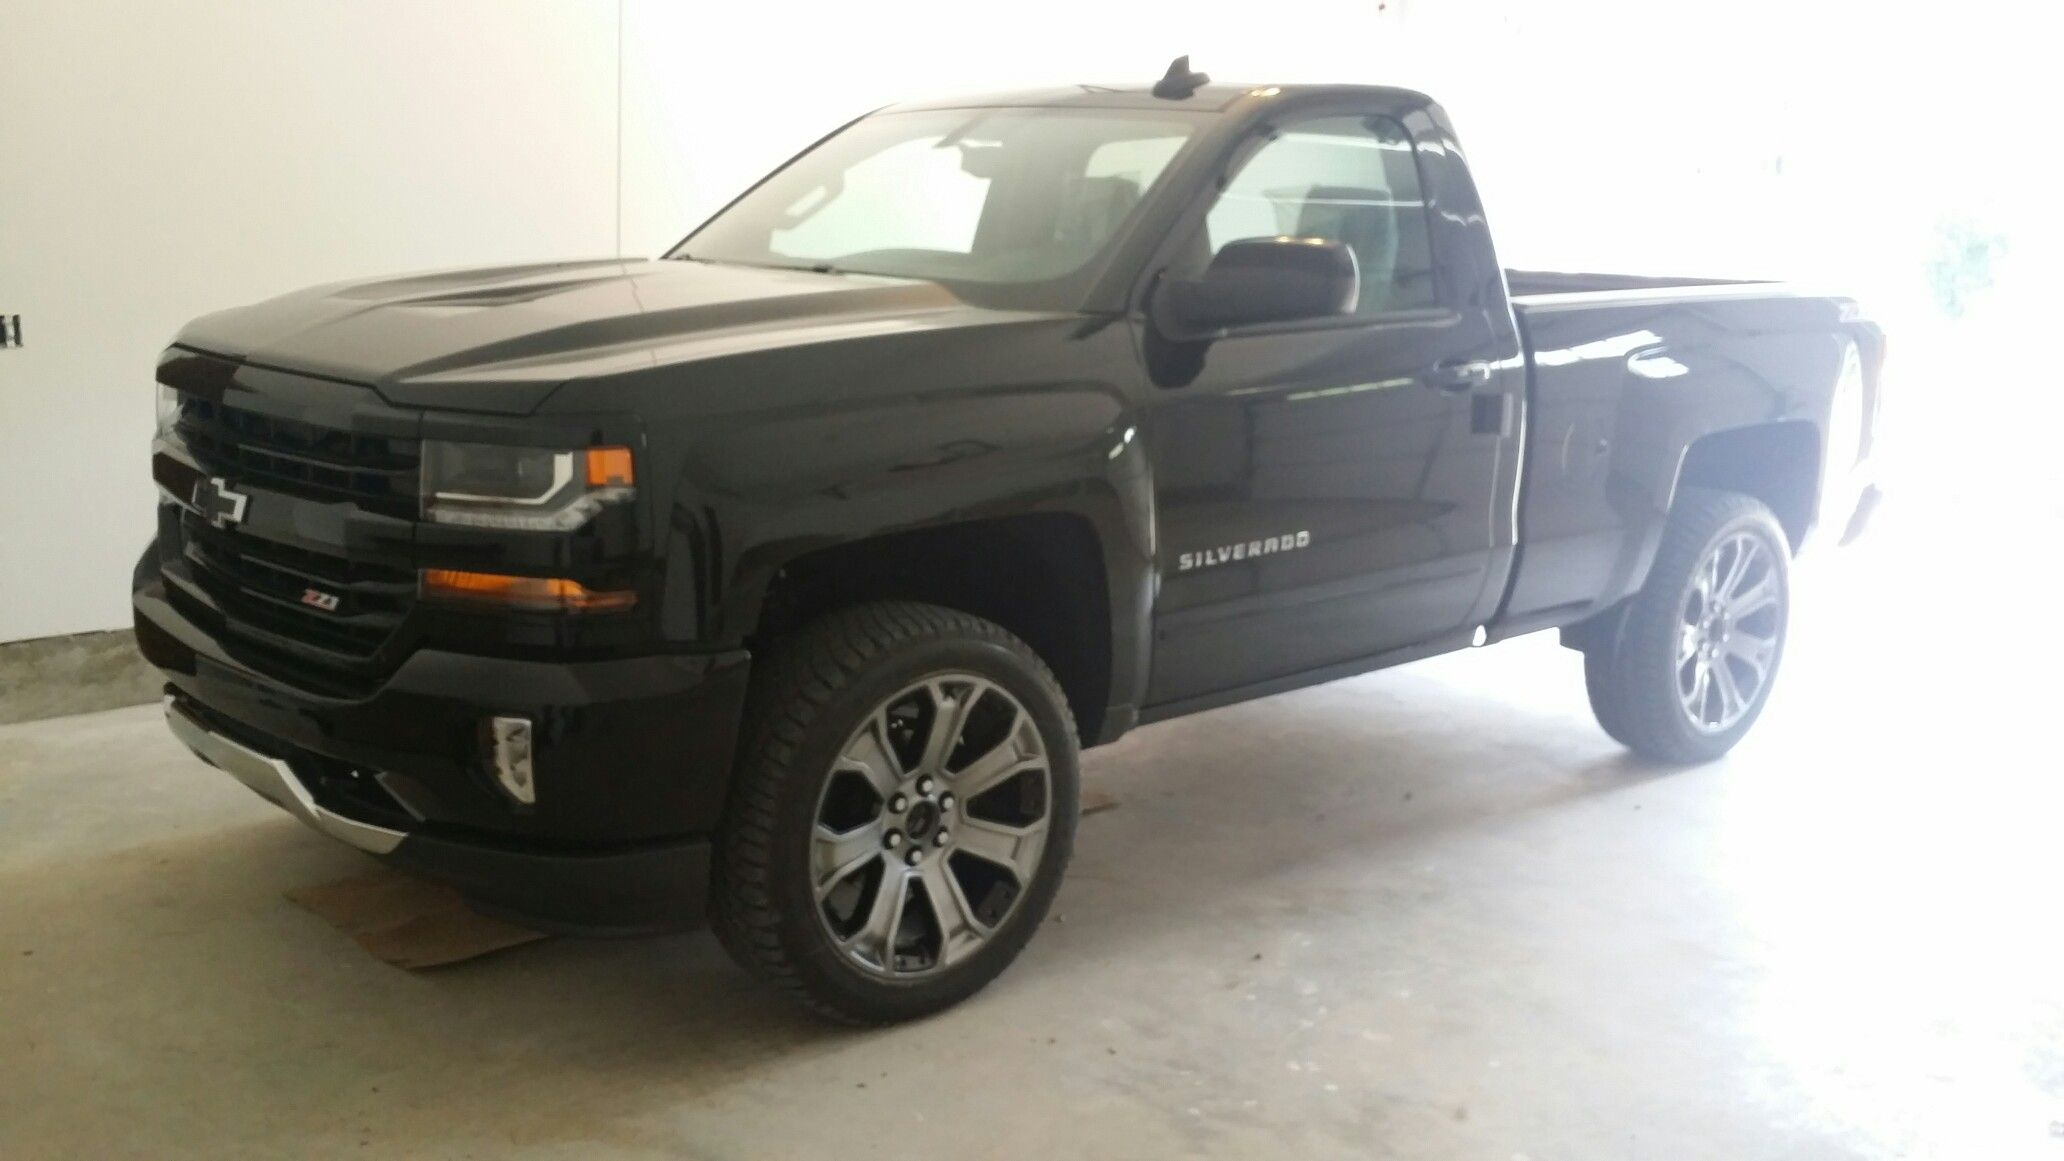 2016 Supercharged Regular Cab Z71 Silverado Silverado